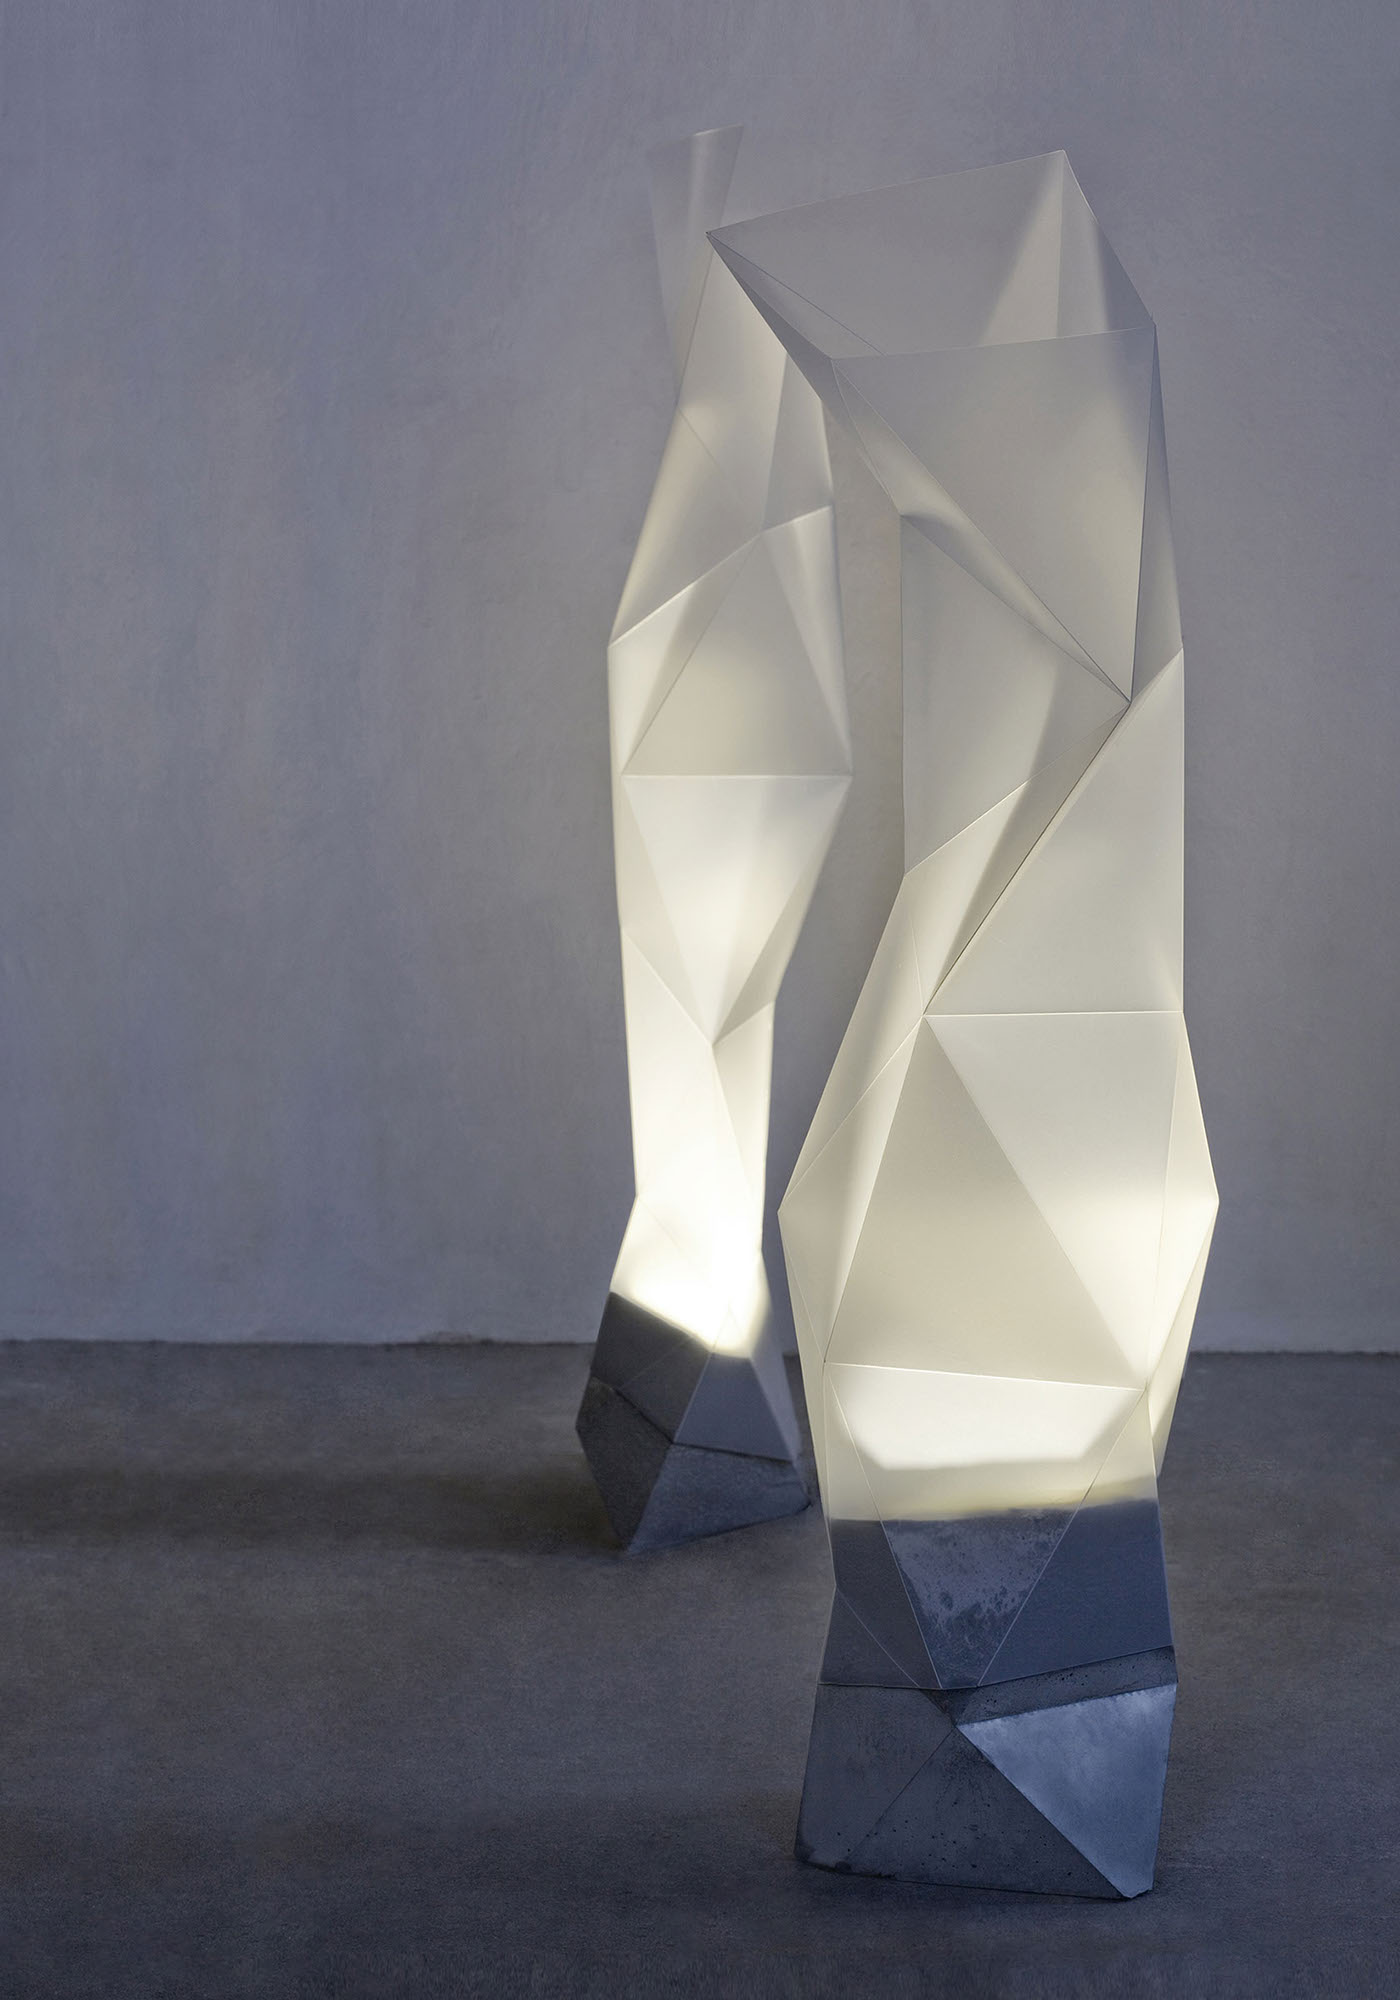 Luksfera Is A Mood Light Decorative Floor Lamp Line Inspired By Paper Folding Techniques